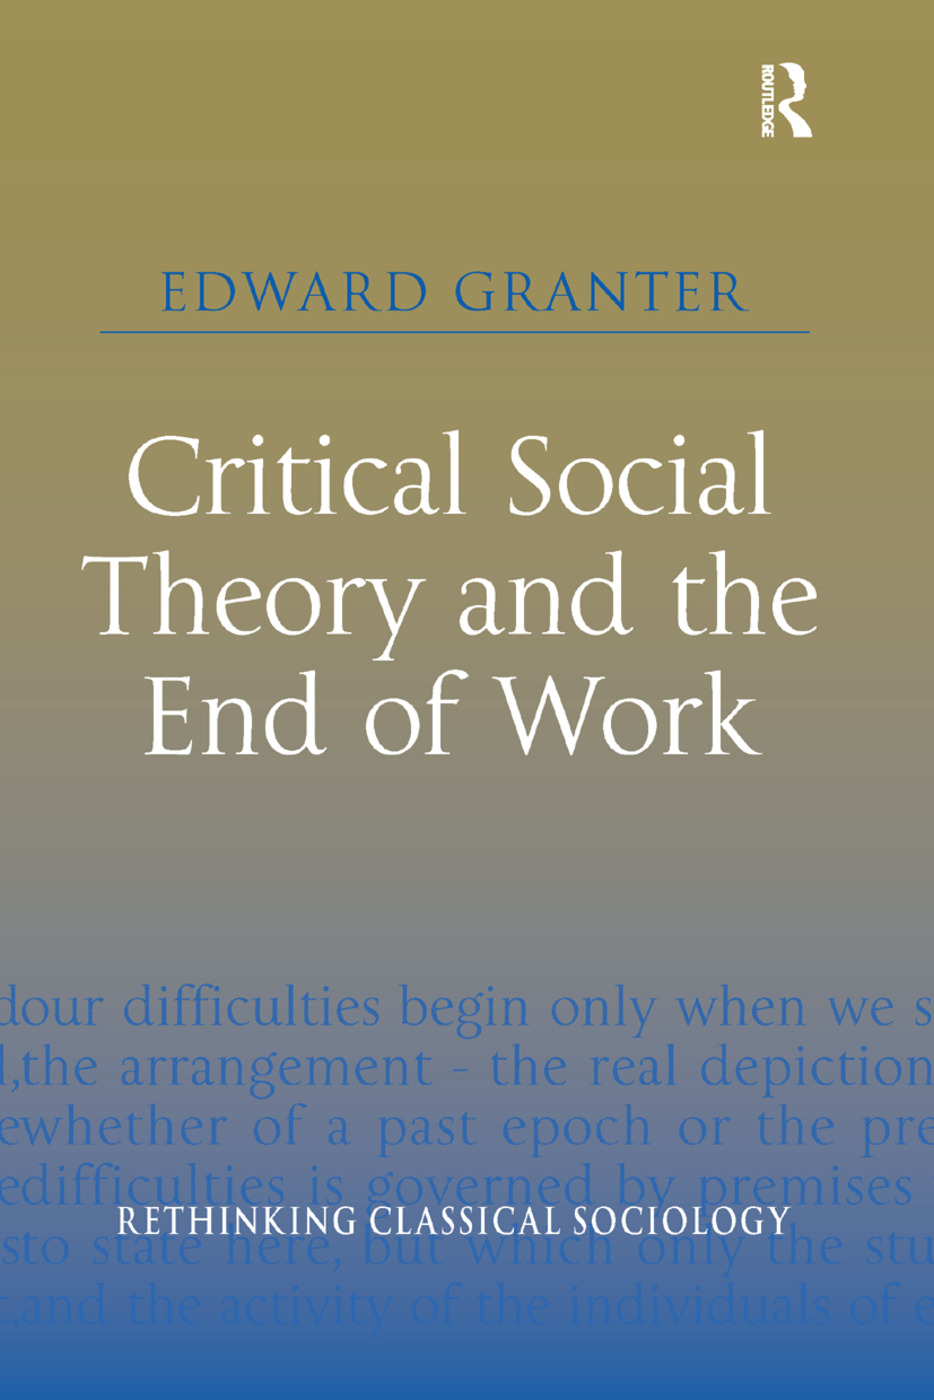 Critical Social Theory and the End of Work book cover